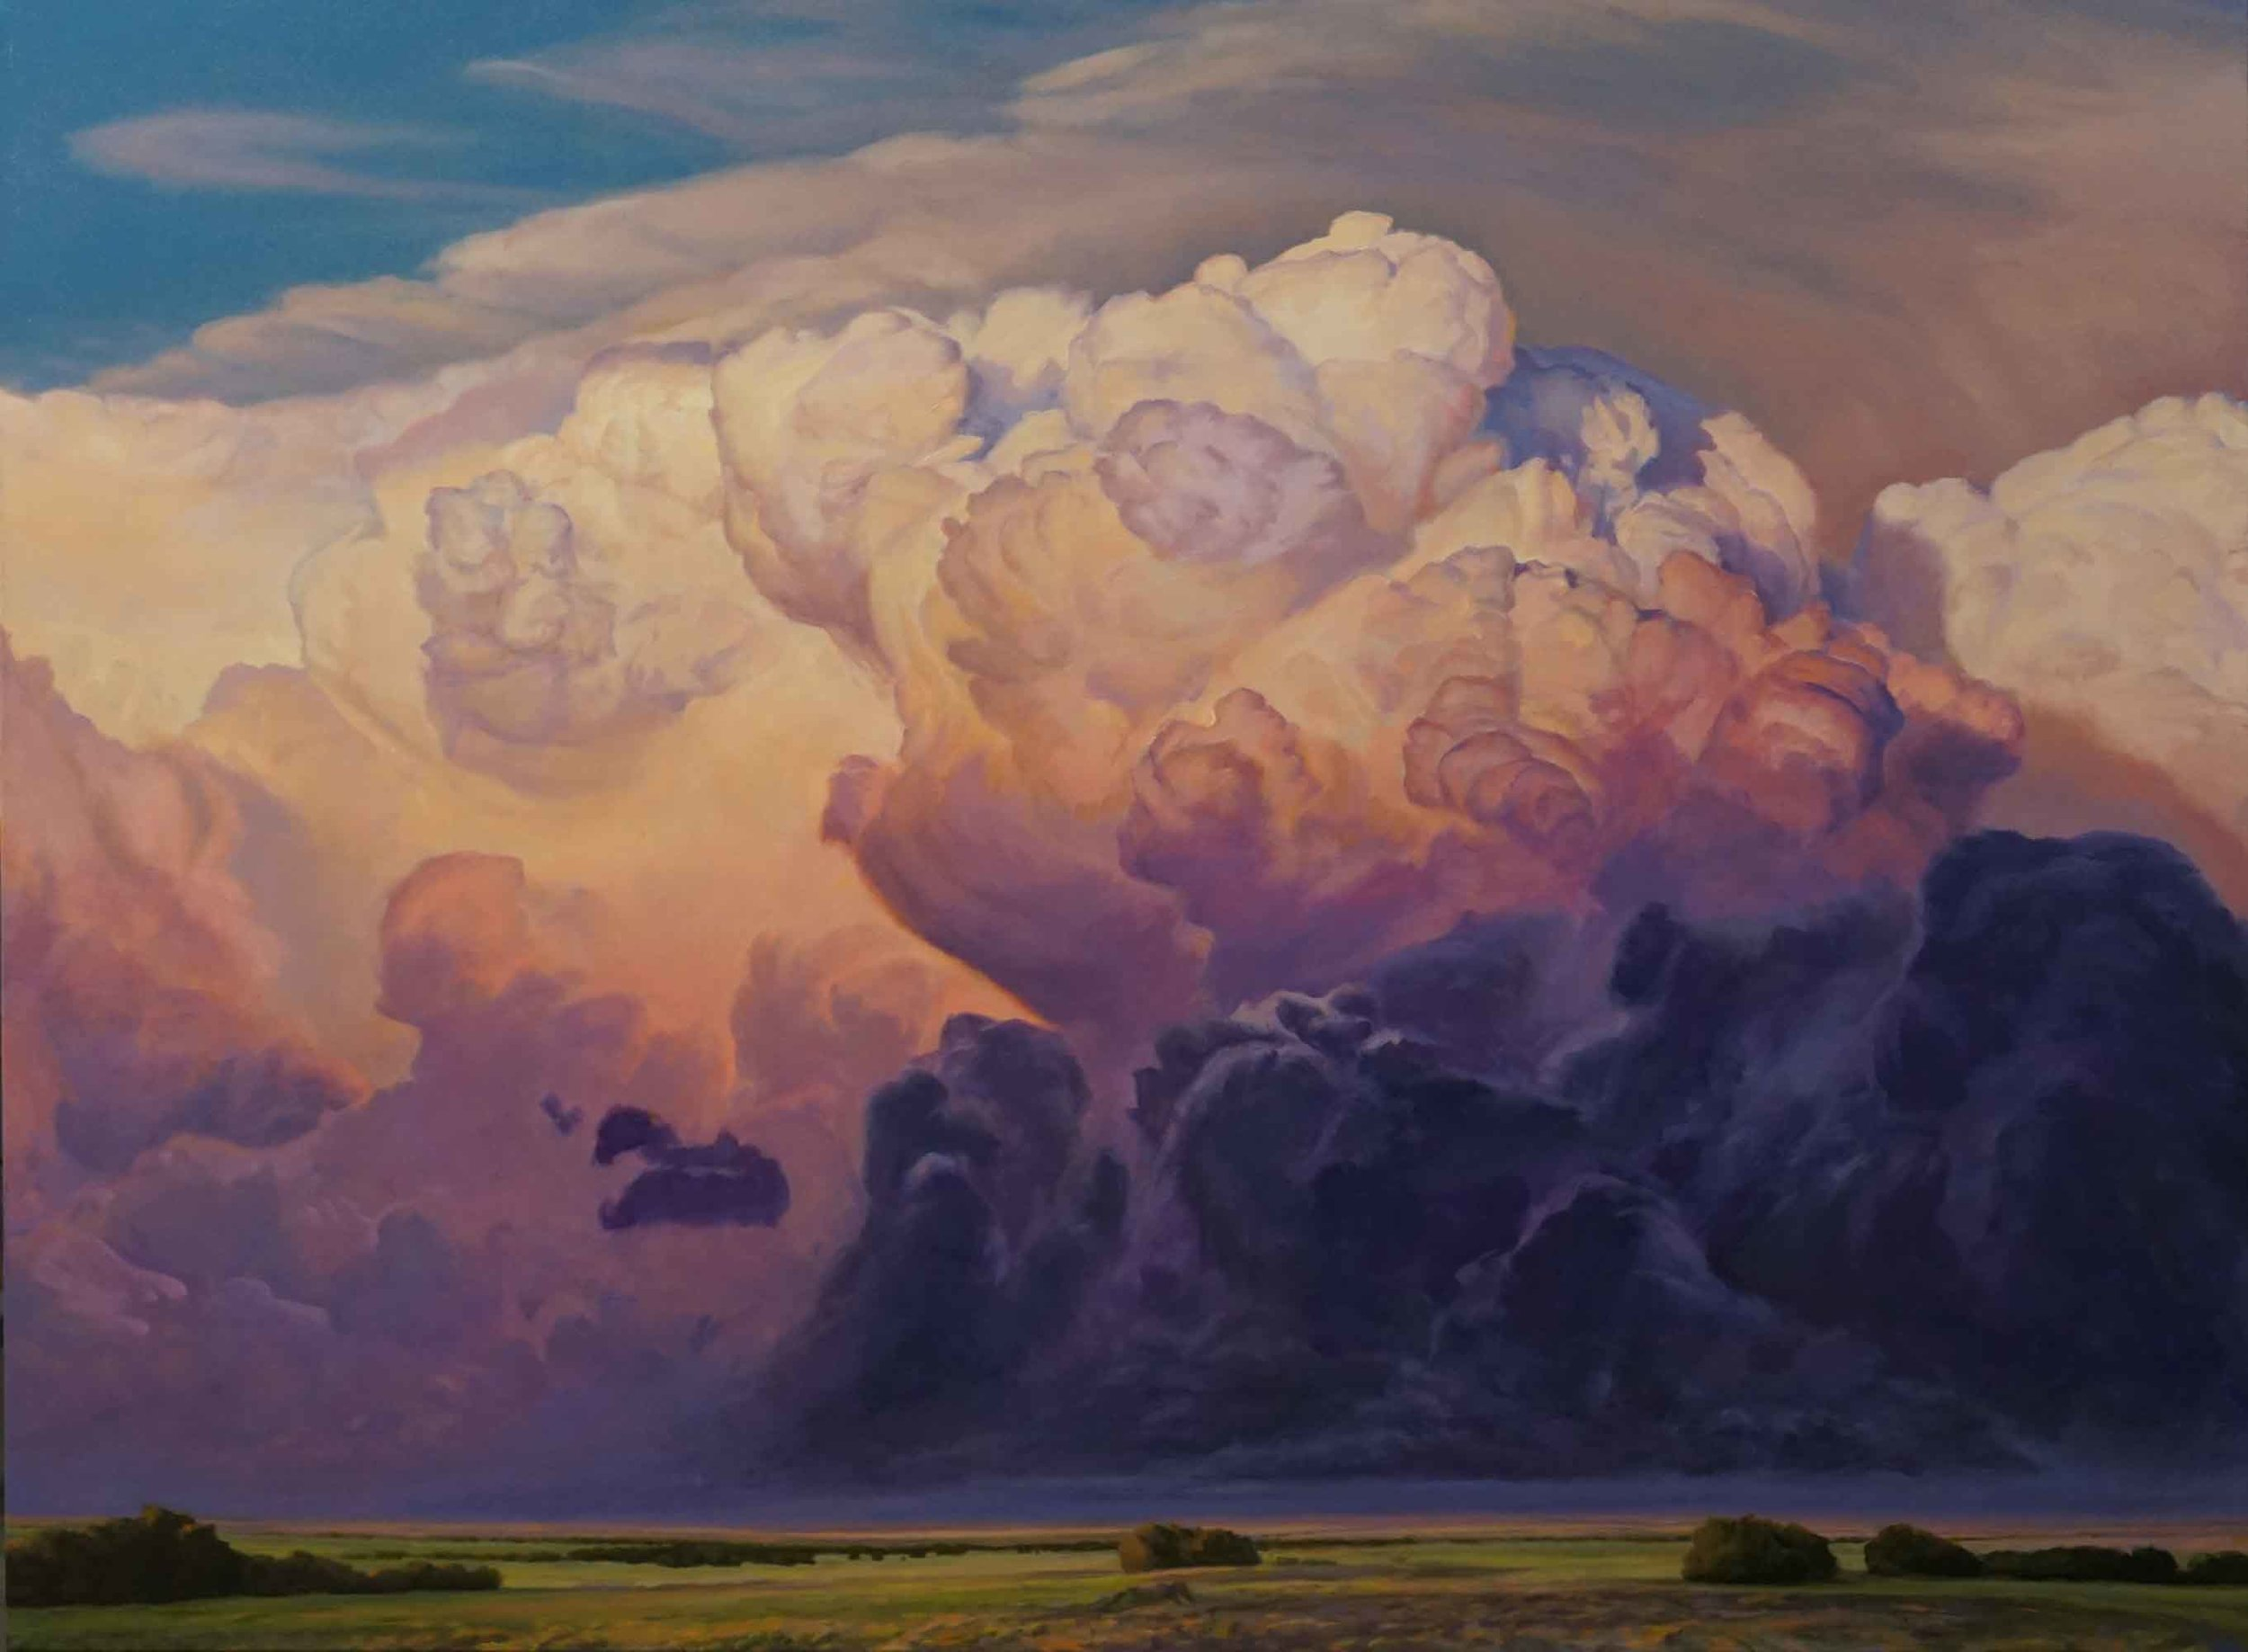 On the Shoulders of Giants | David Holland | 36x48"